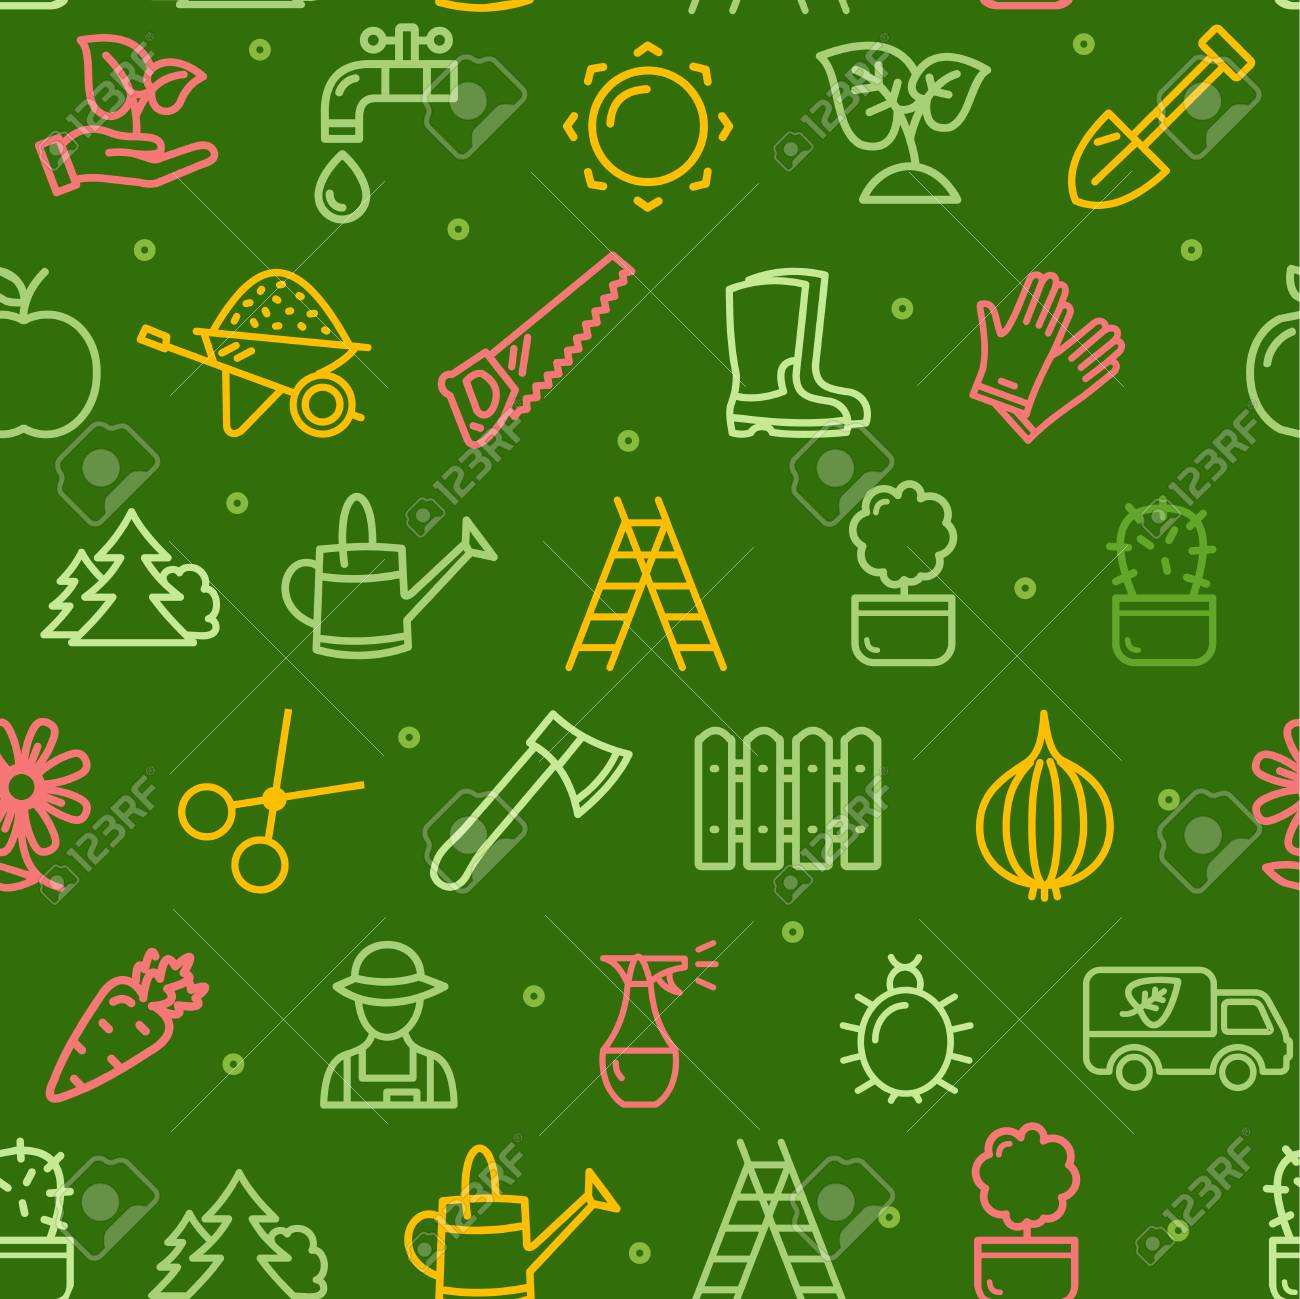 Gardening Seamless Pattern Background Or Wallpaper With Outline Royalty Free Cliparts Vectors And Stock Illustration Image 94380067